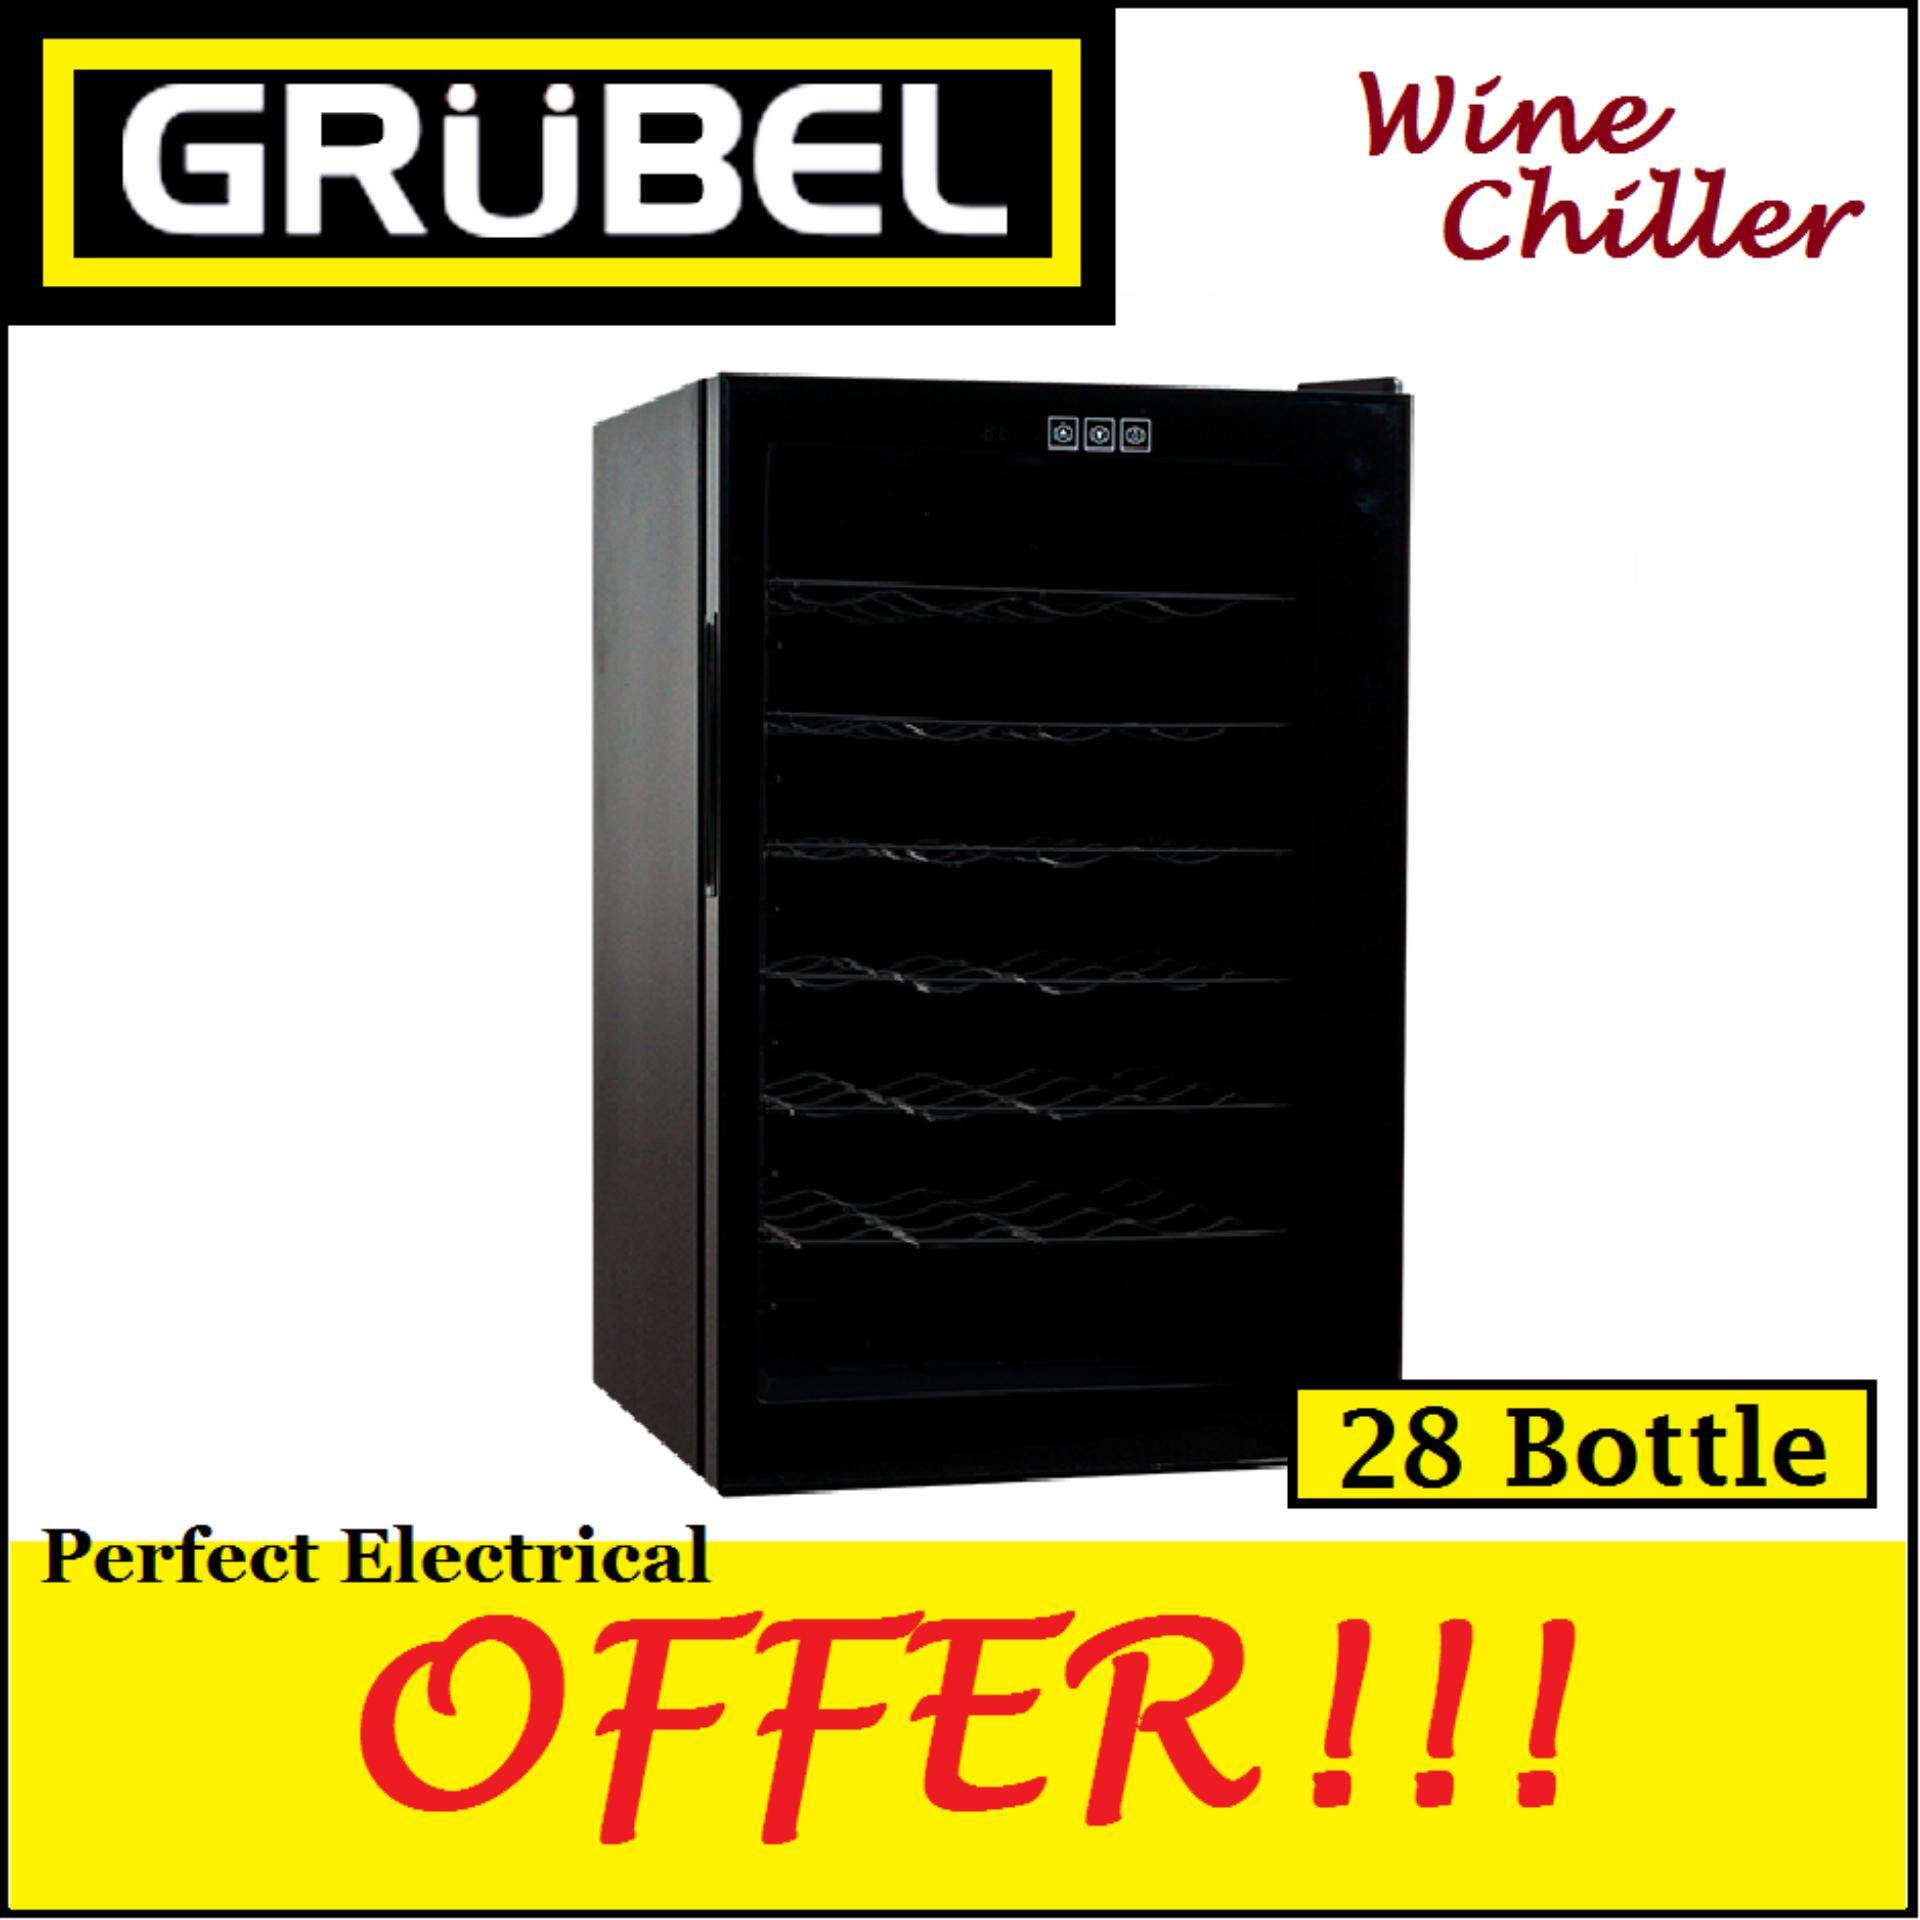 Grubel Wine Cellar Gwc-Tp28bk - 28 Bottles (germany) By Perfect Electrical Store.